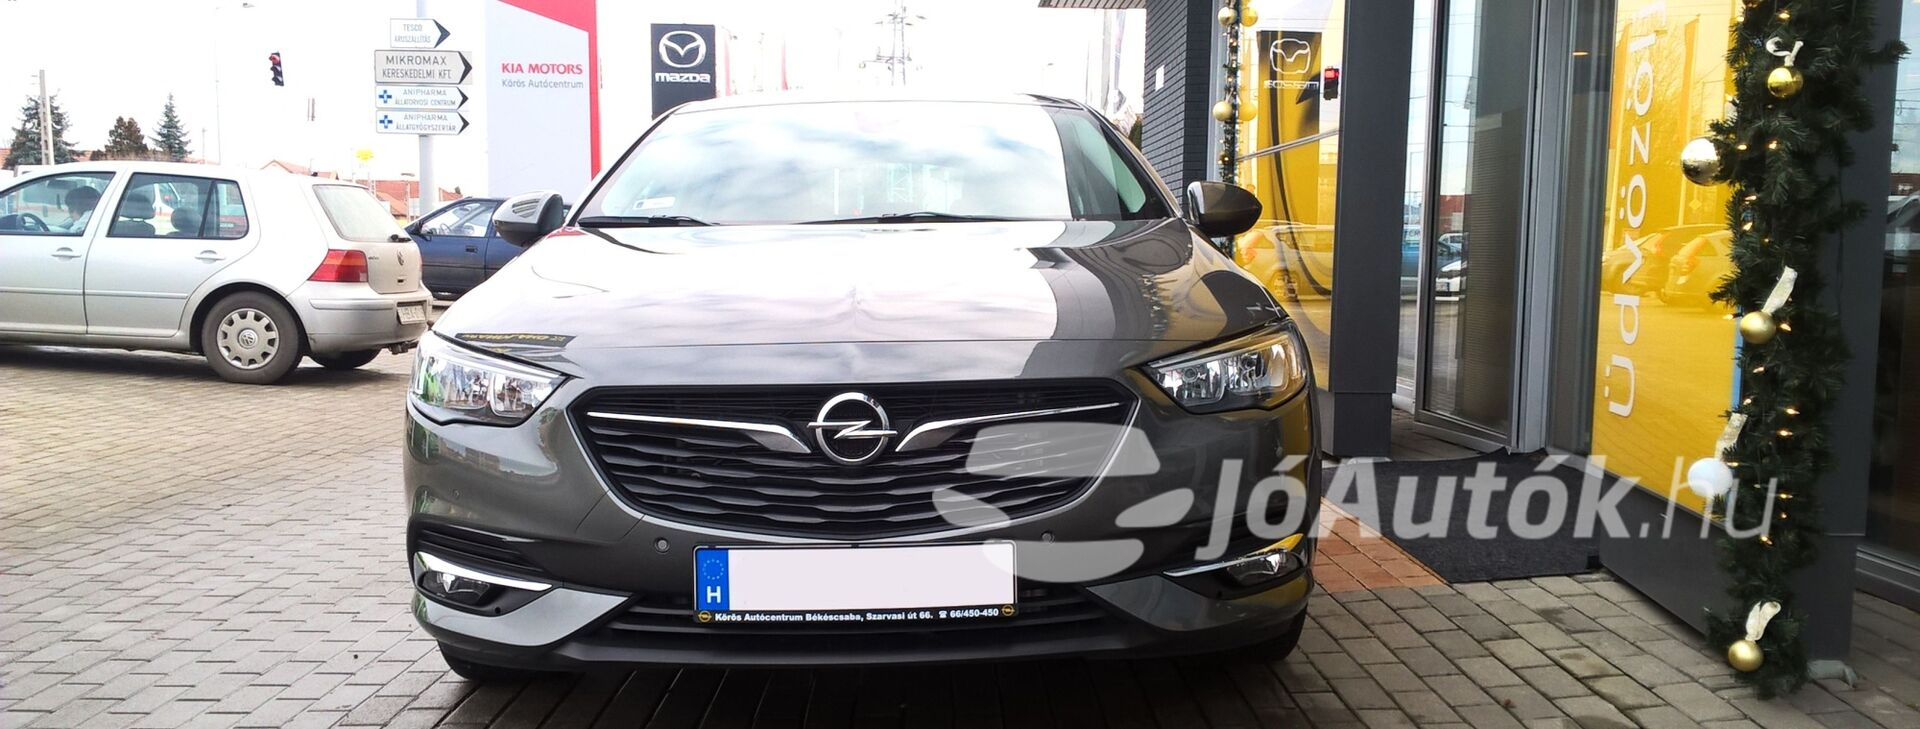 OPEL Insignia Grand Sport 1.5 Edition Start/Stop - szemből